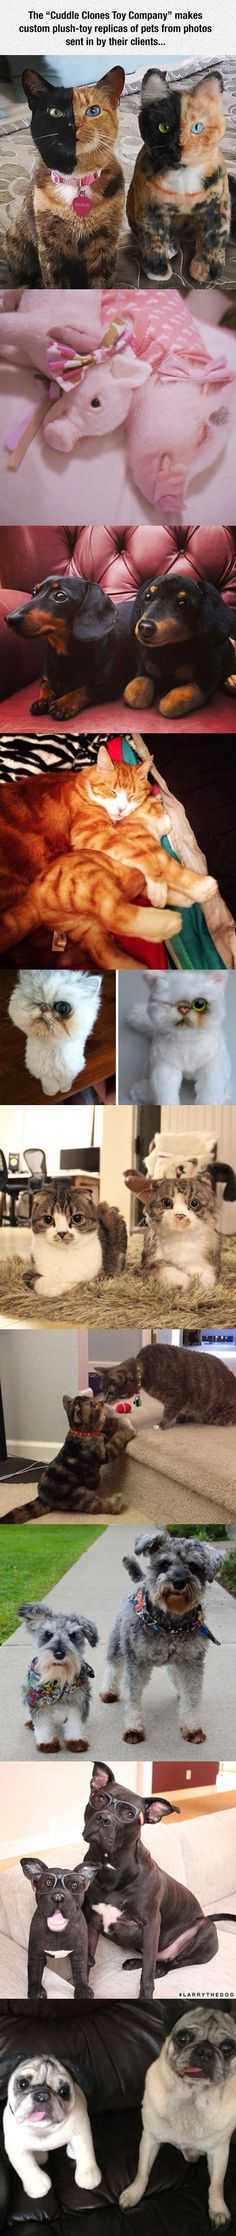 This Company Makes Plush Toy Copies Of Your Pets